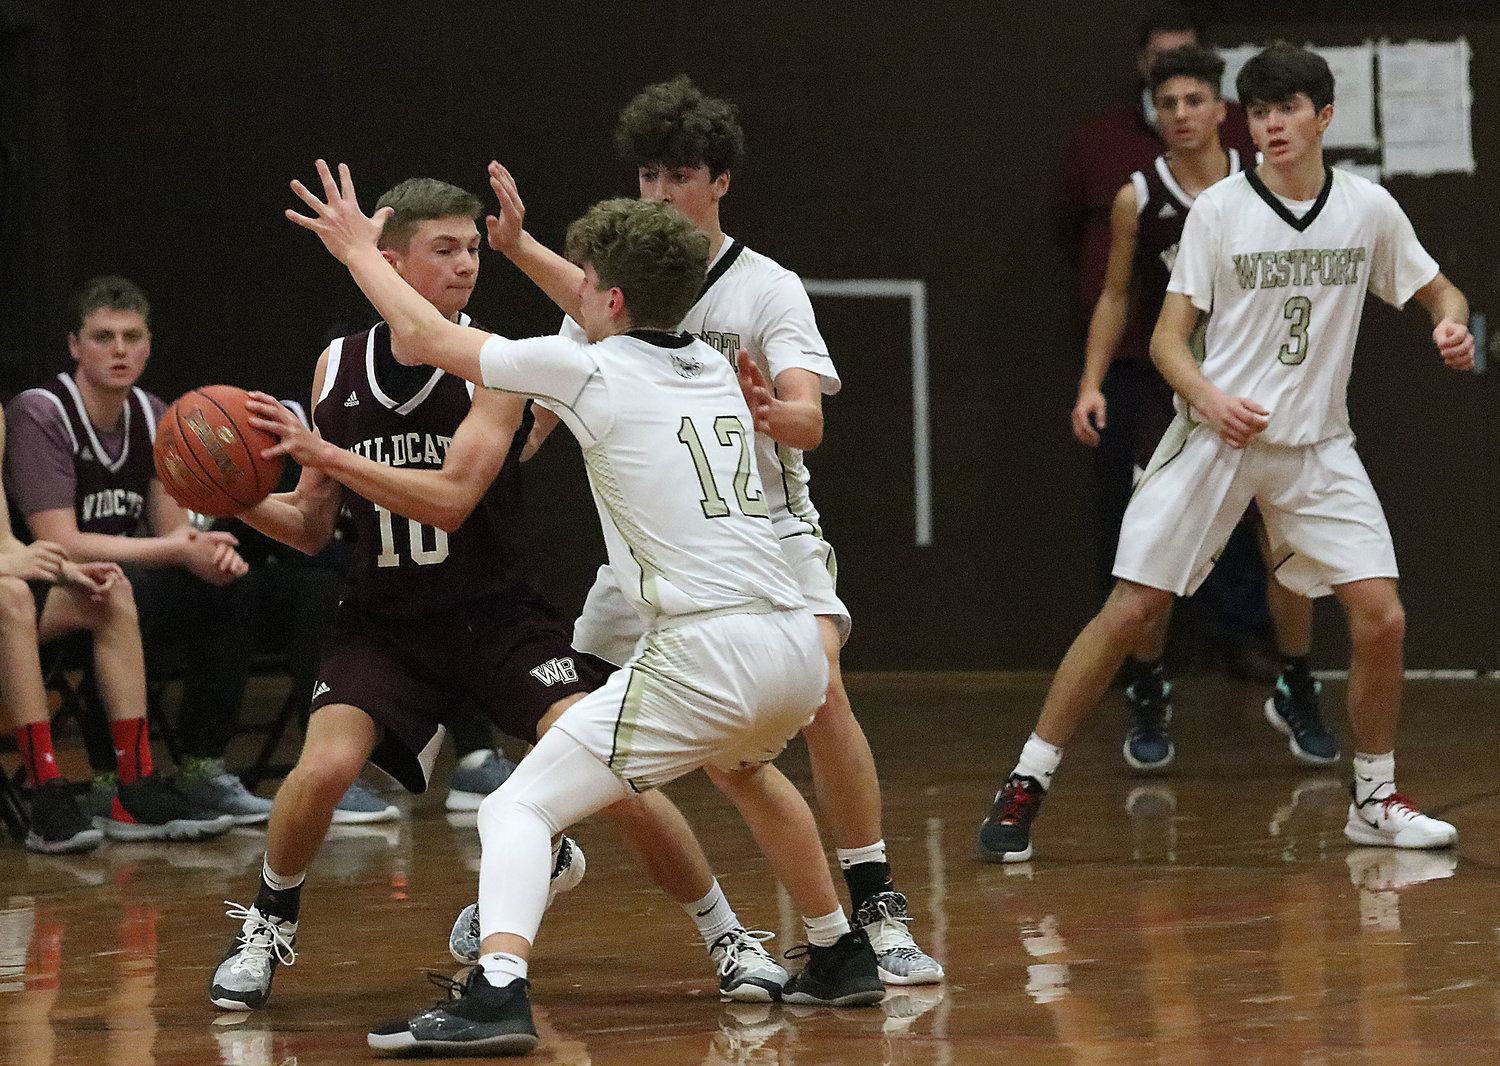 Max Mendell (left) and Max Powers double team West Bridgewater's Ryan Hulme with Aidan Viveiros looking on.